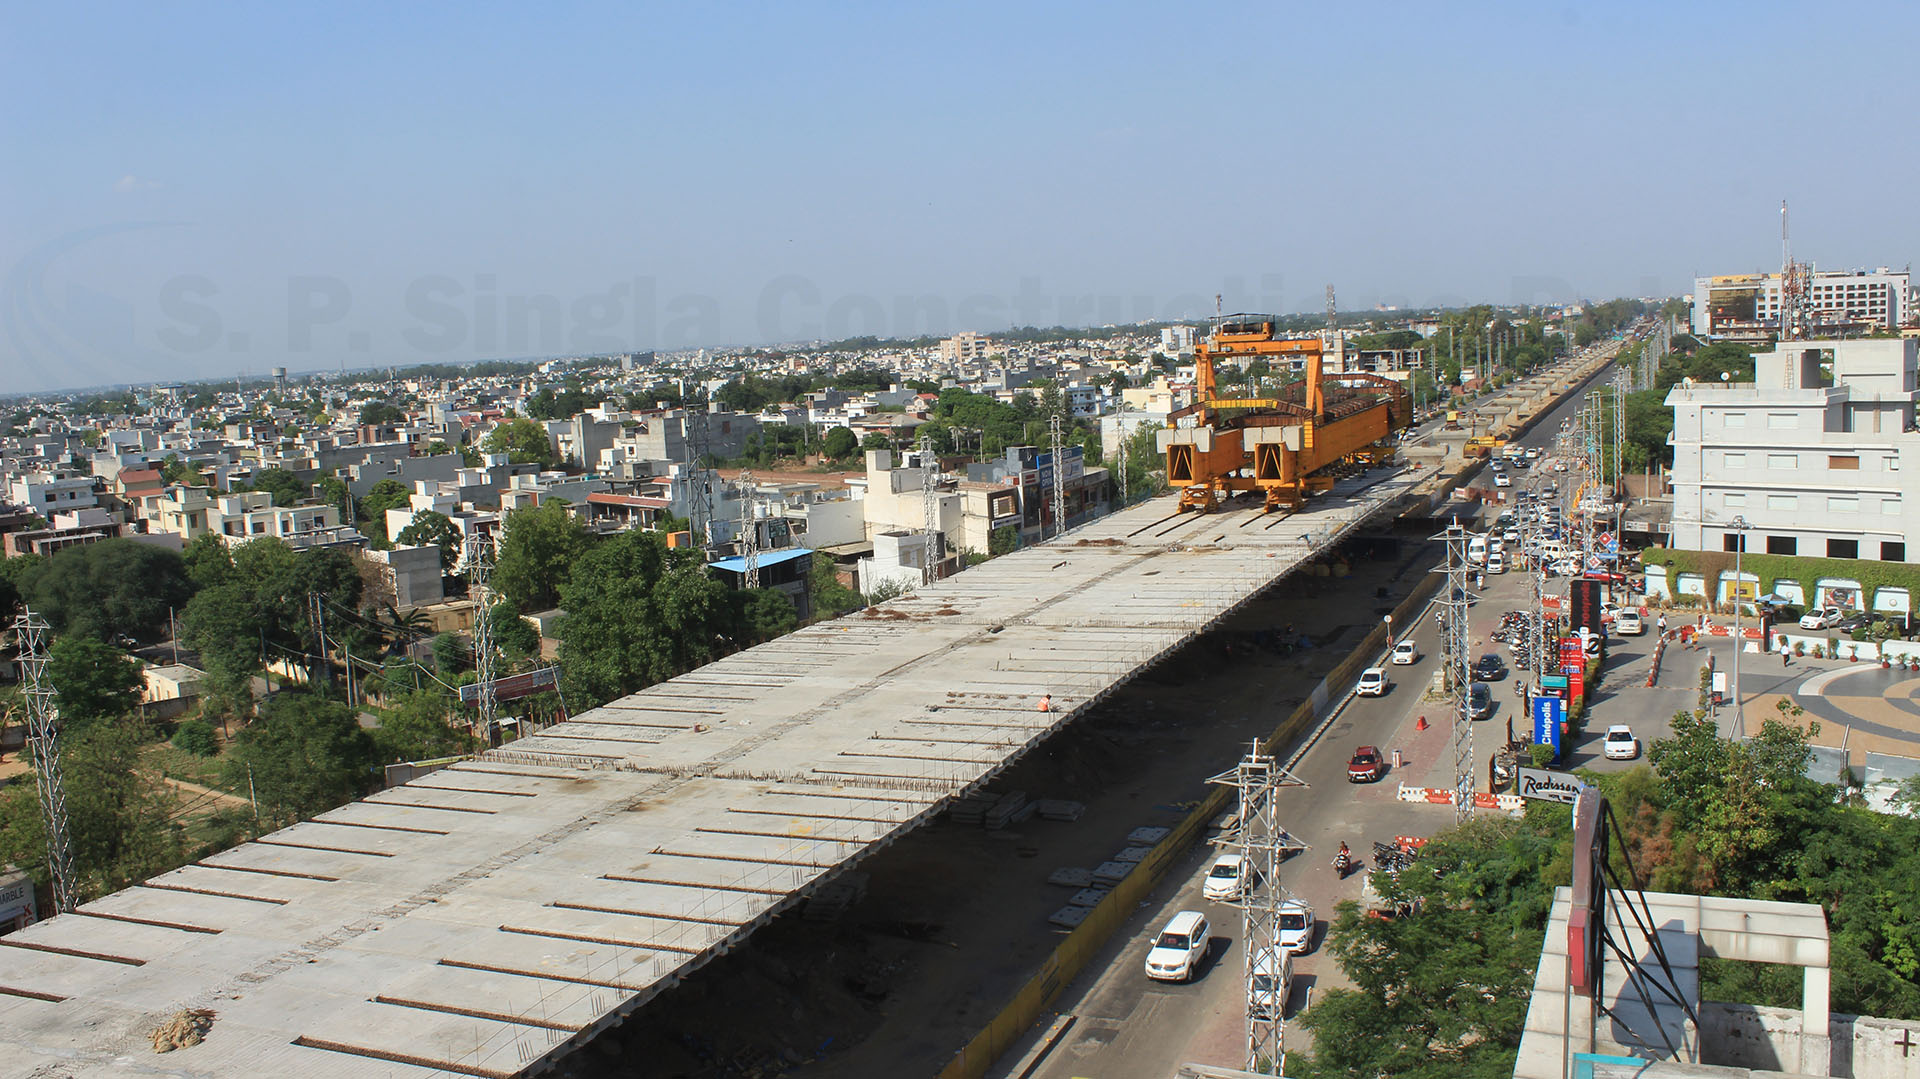 Partially access controlled 4 Lane Elevated Highway between Samrala Chowk to Ludhiana Municipal Limit of NH-95 in Punjab